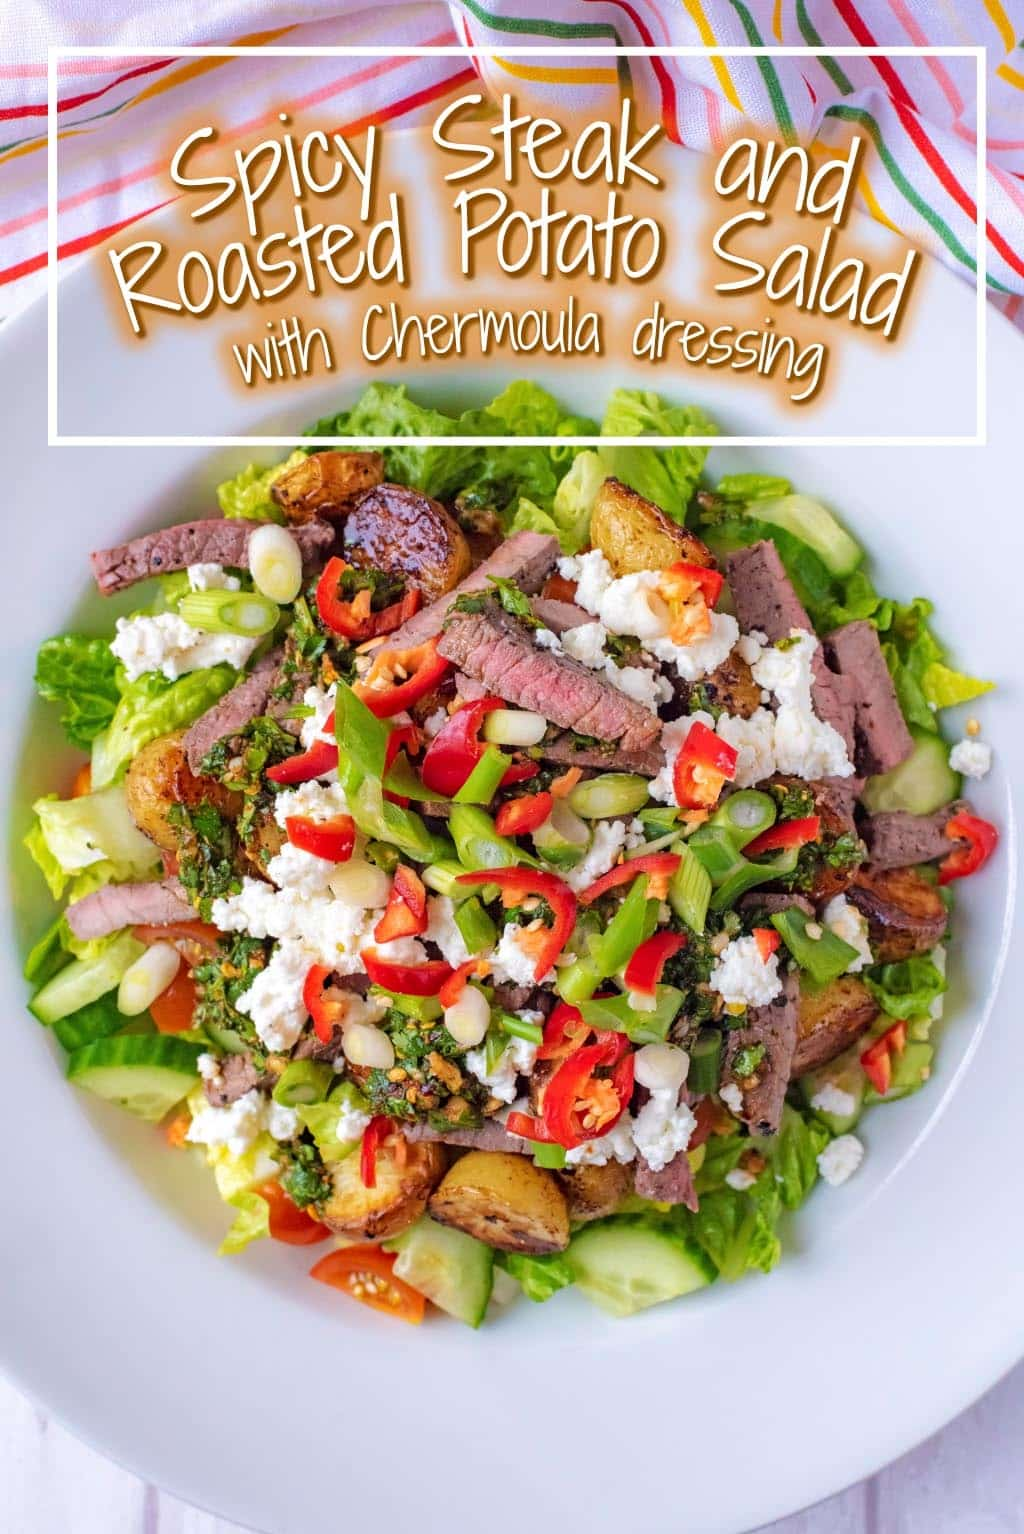 Spicy Steak and Roasted Potato Salad with Chermoula Dressing. It is possibly the best salad I have ever made, with a Dressing you will want to put on everything, so you are in for a treat!